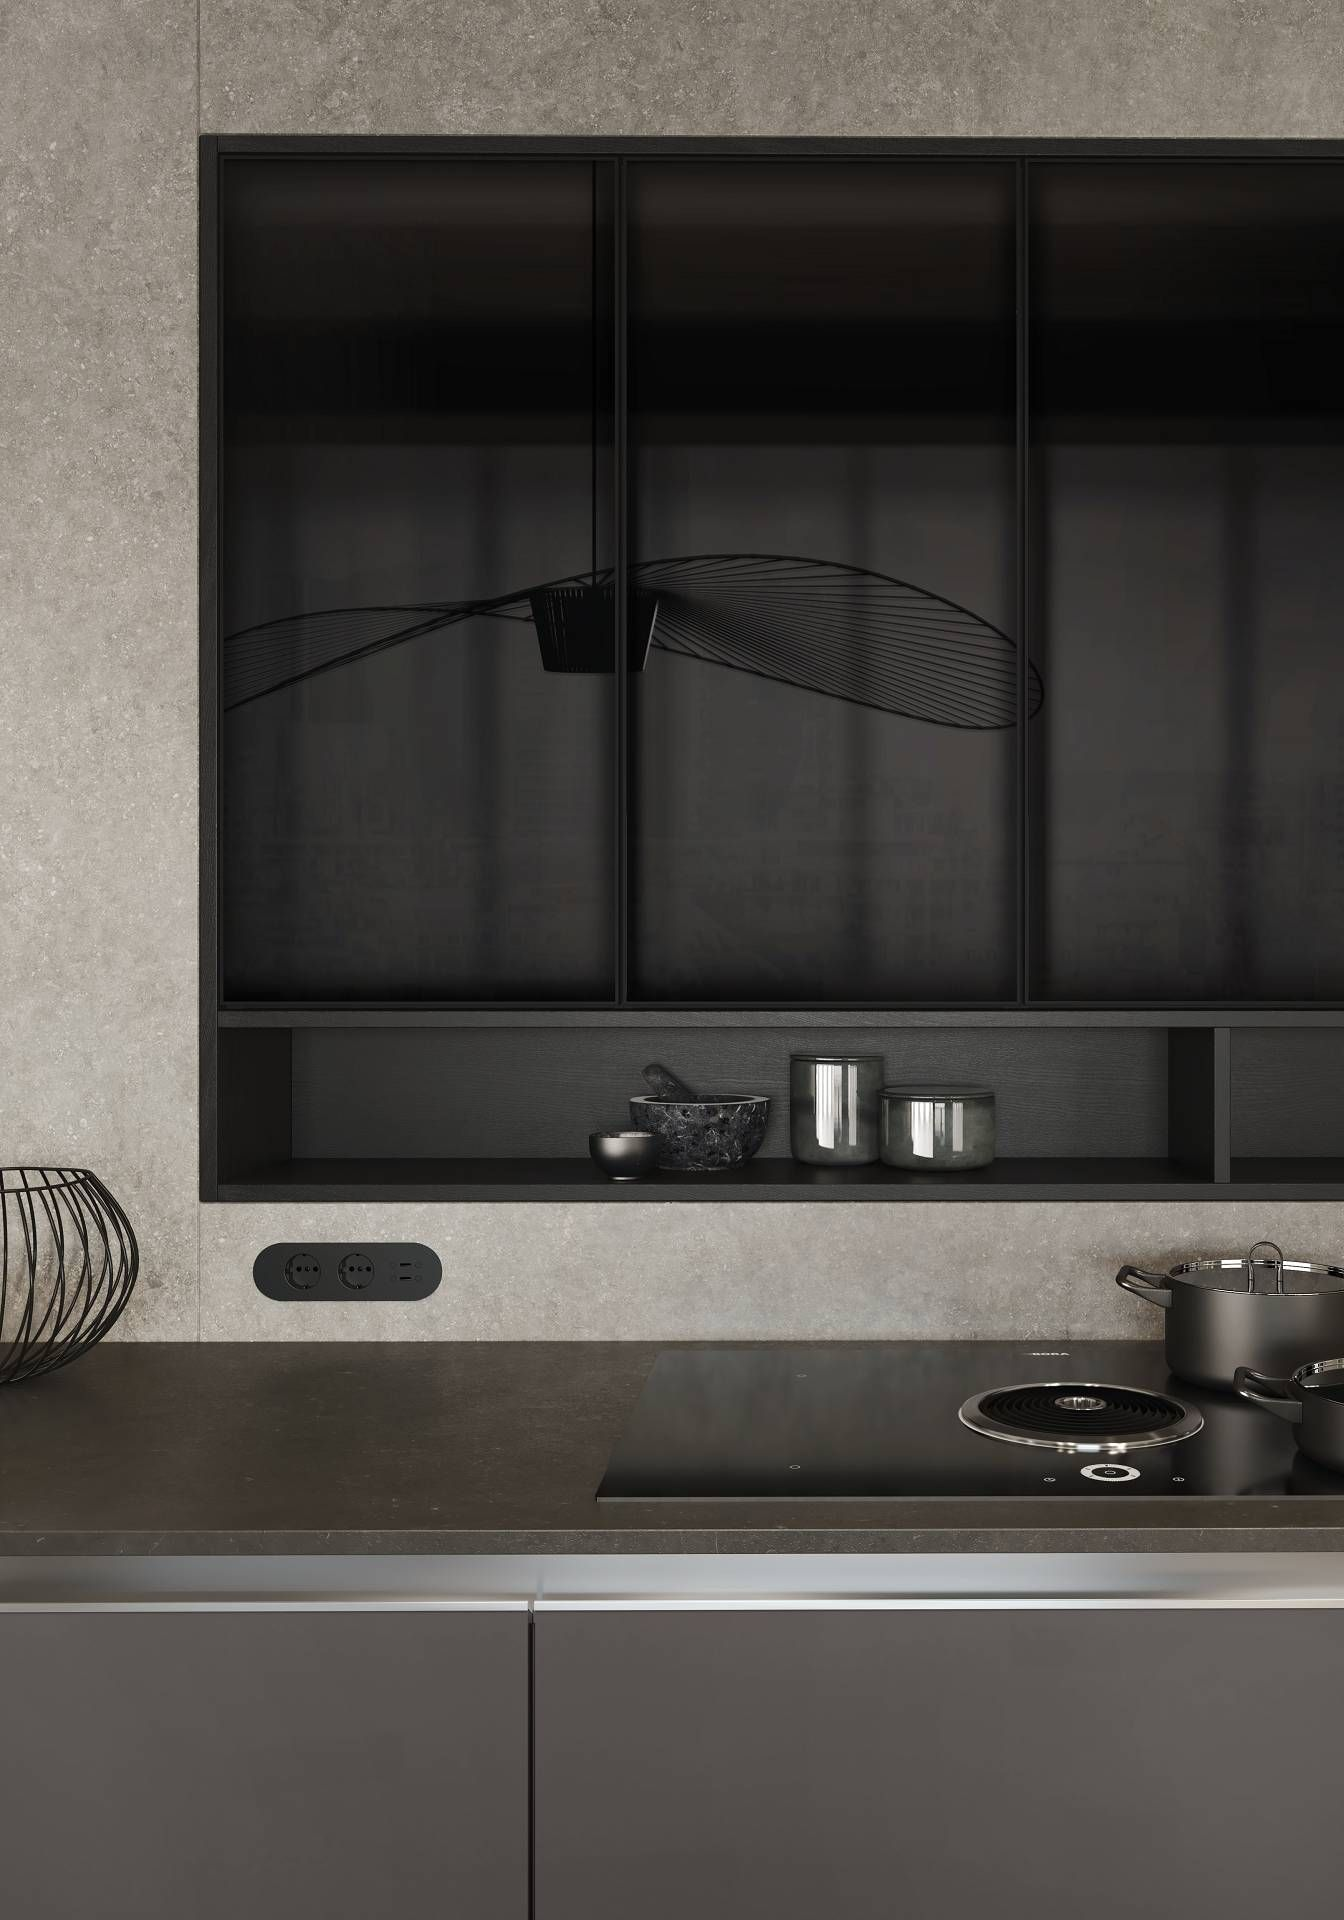 From The Siematic Pure Collection Nearly Opaque Black Glass With A Thin Black Matte Metal Frame Luxury Kitchen Decor Pure Products Vintage Kitchen Decor